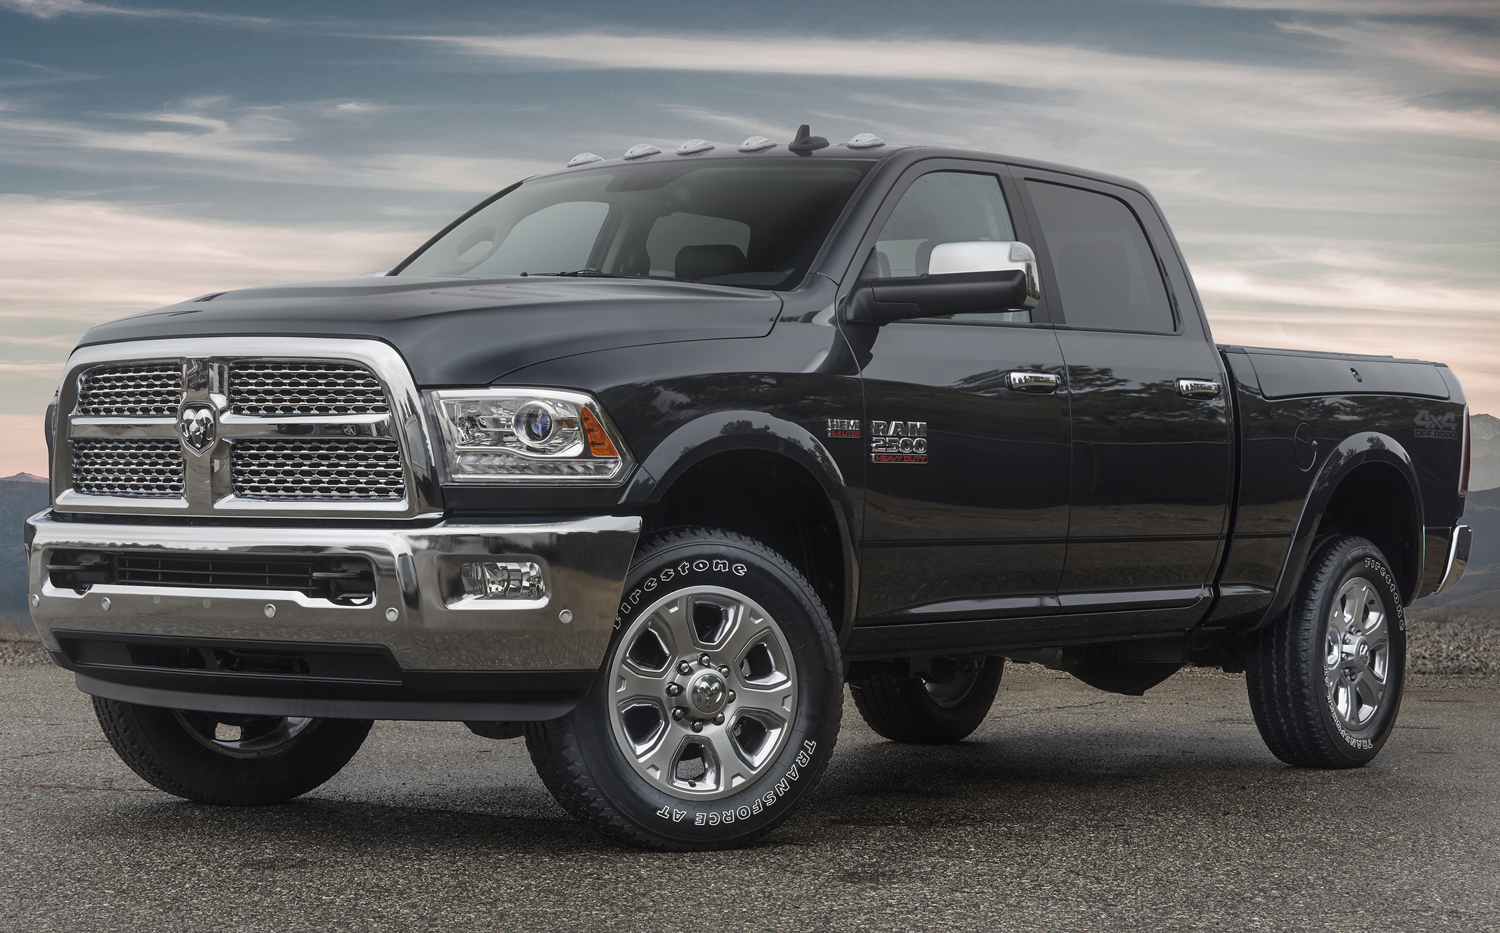 A 4 4 off road package helps the ram 2500 go farther off the beaten path